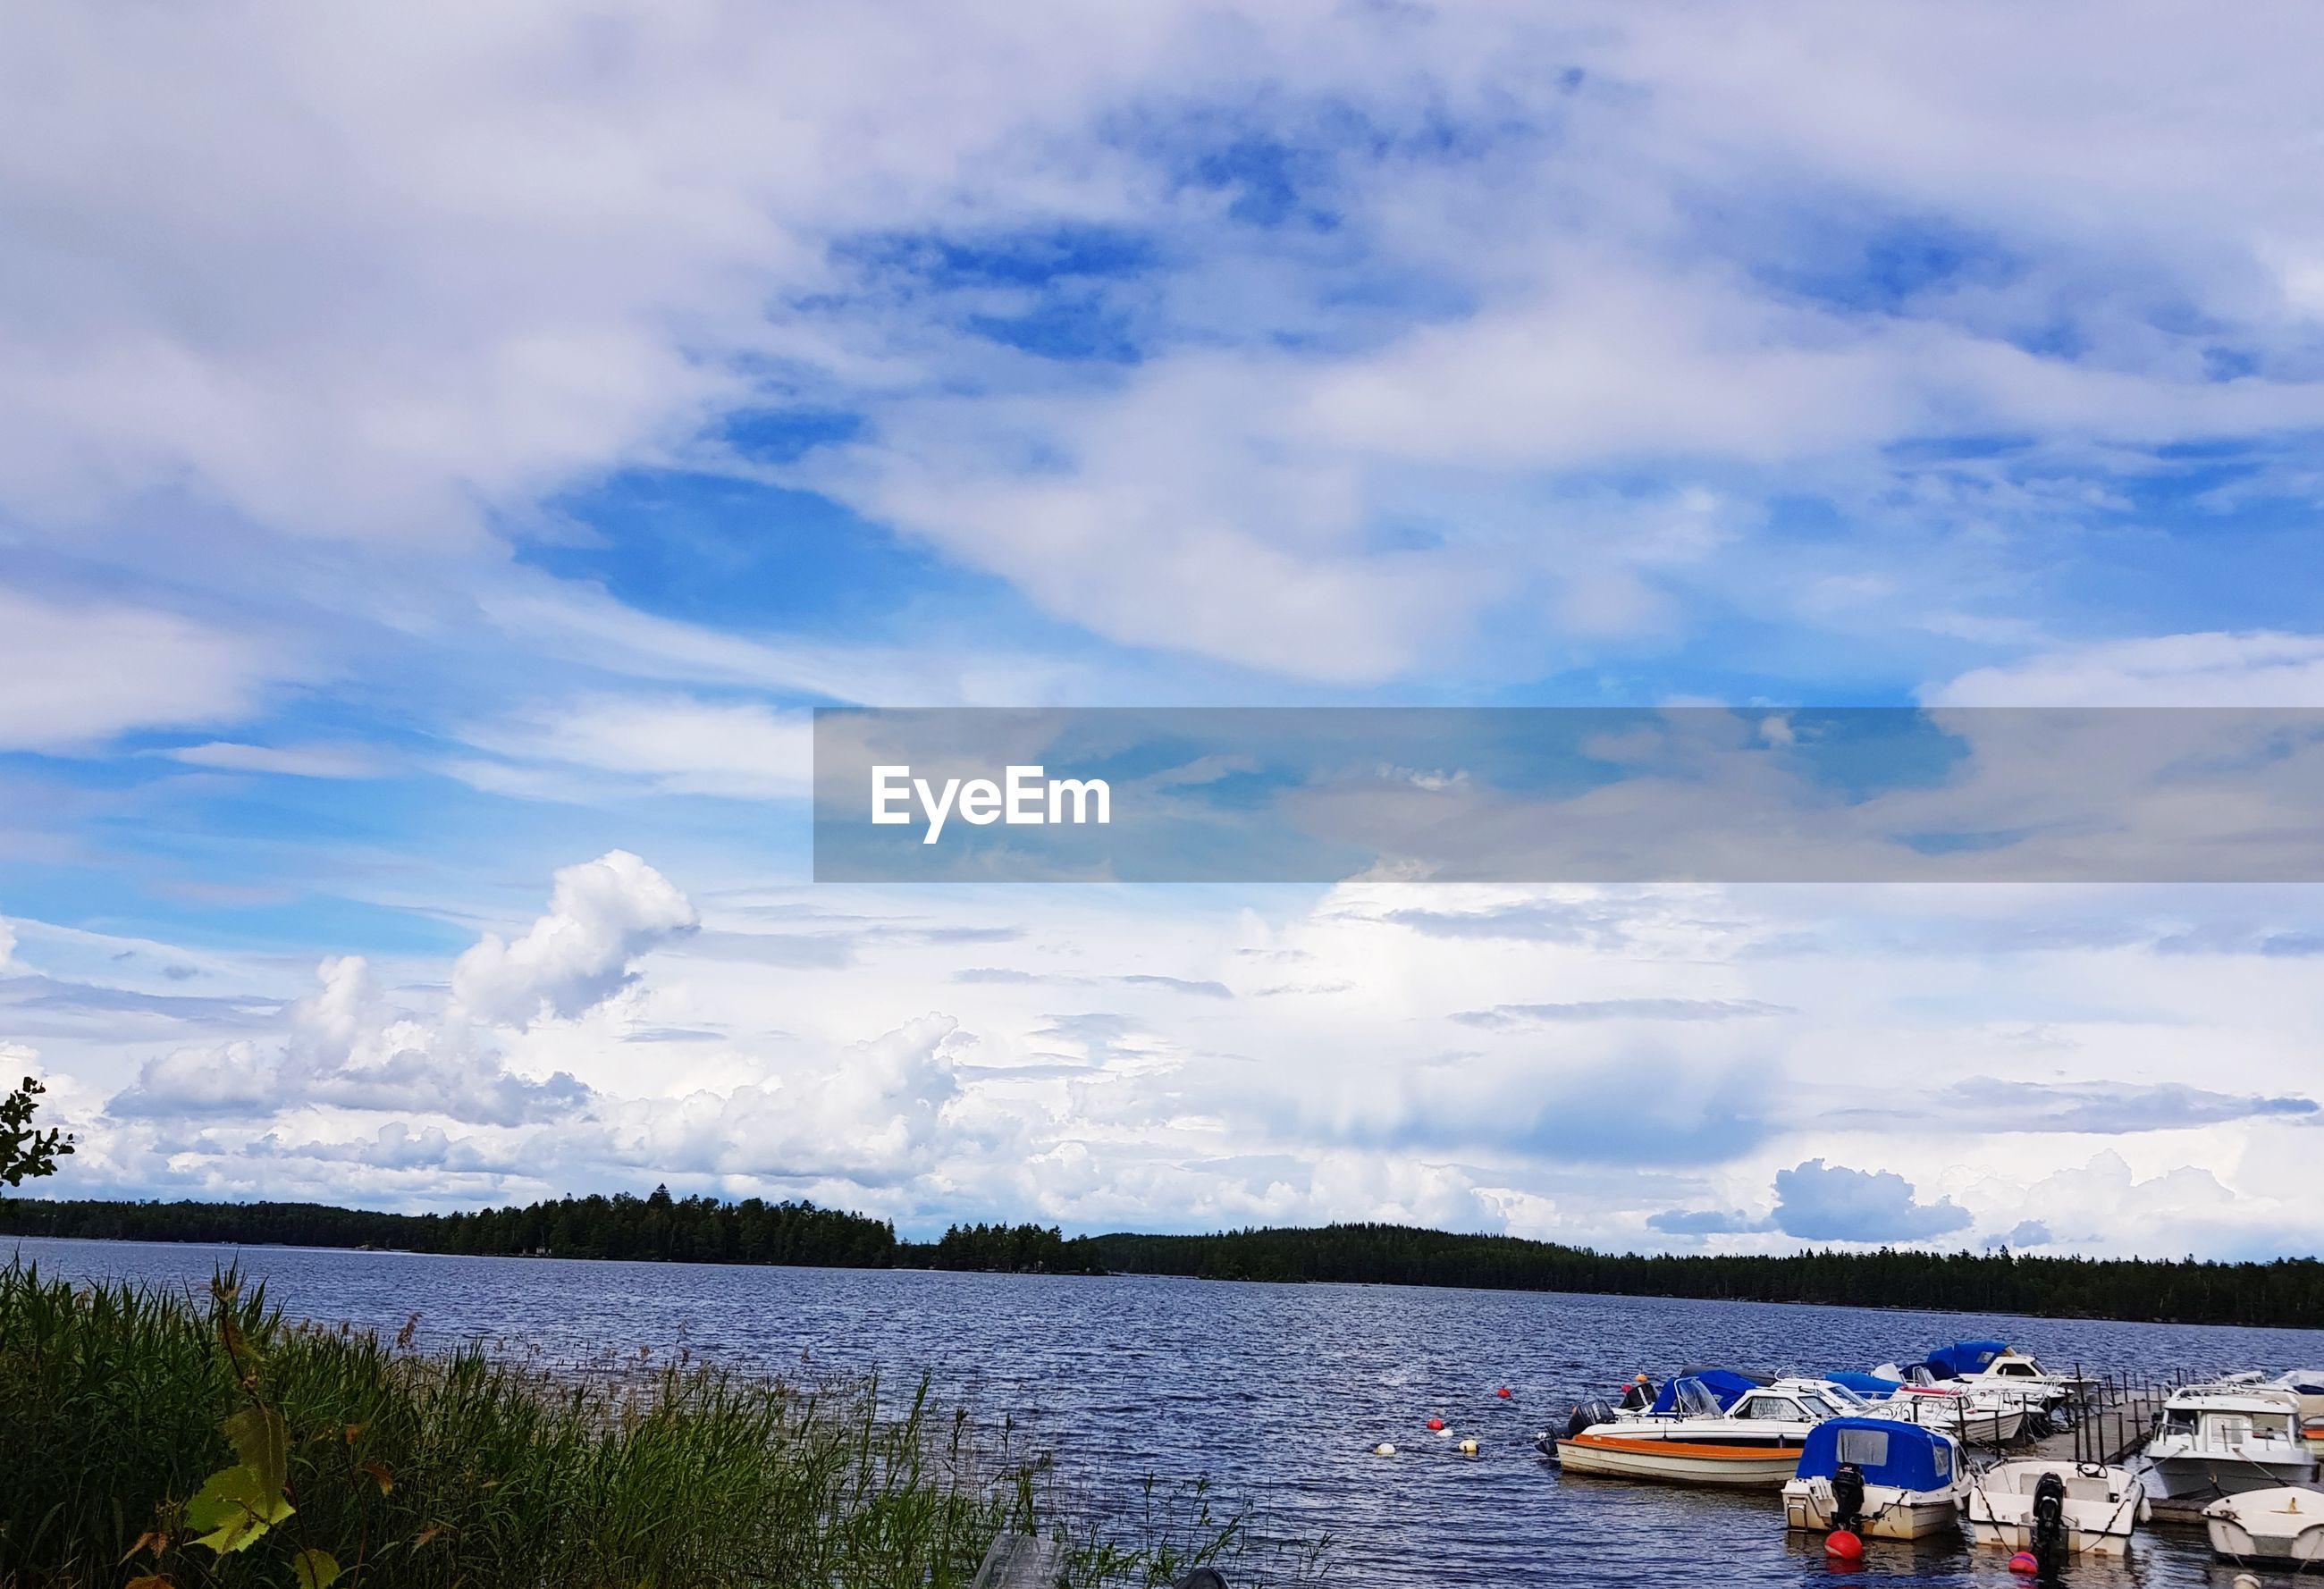 VIEW OF LAKE AGAINST SKY